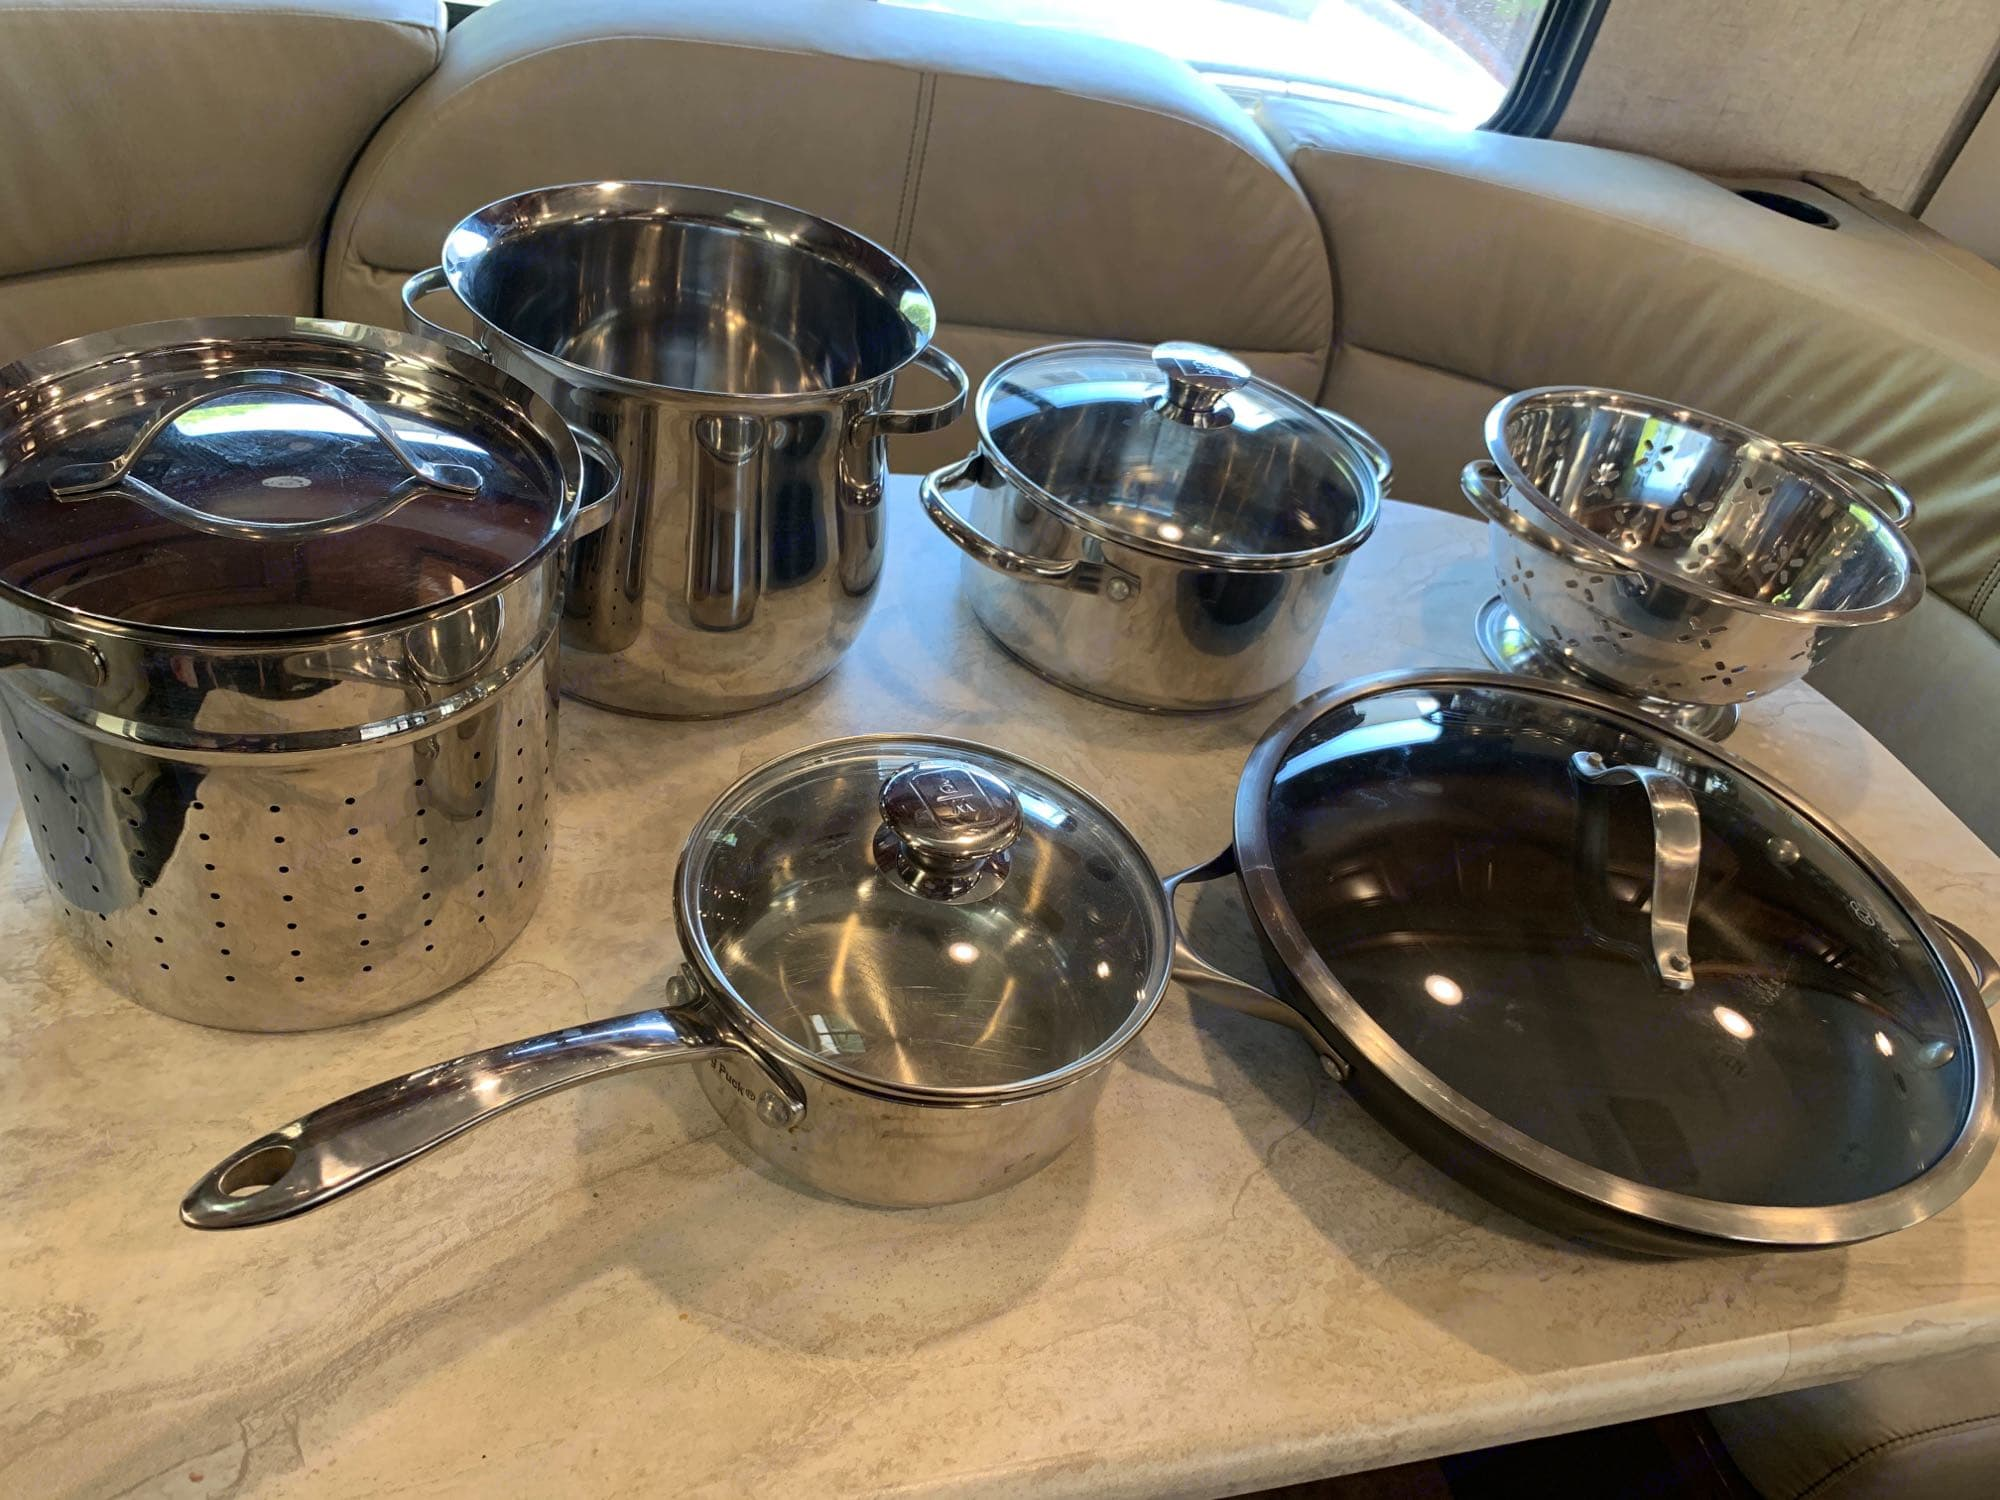 pots, pans, strainer included with rental. Forest River Forester 2017